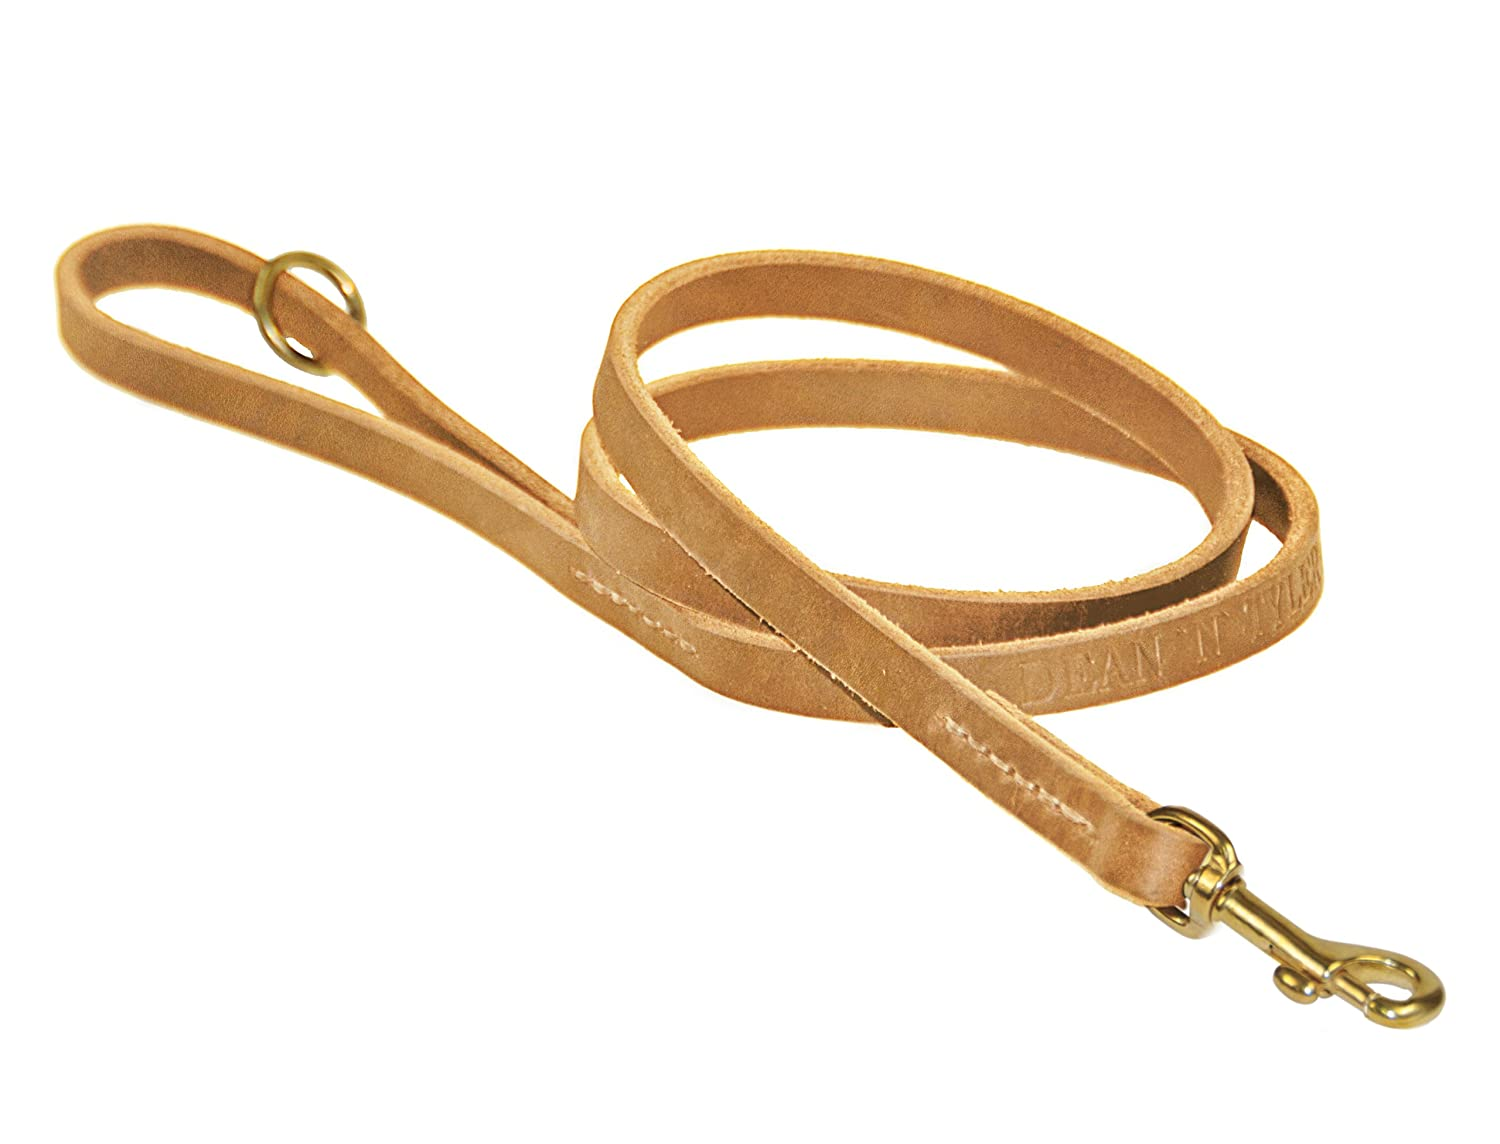 Dean & Tyler No Nonsense Dog Leash with Full Grain Leather and Solid Brass Hardware, 2-Feet by 1 2-Inch, Tan